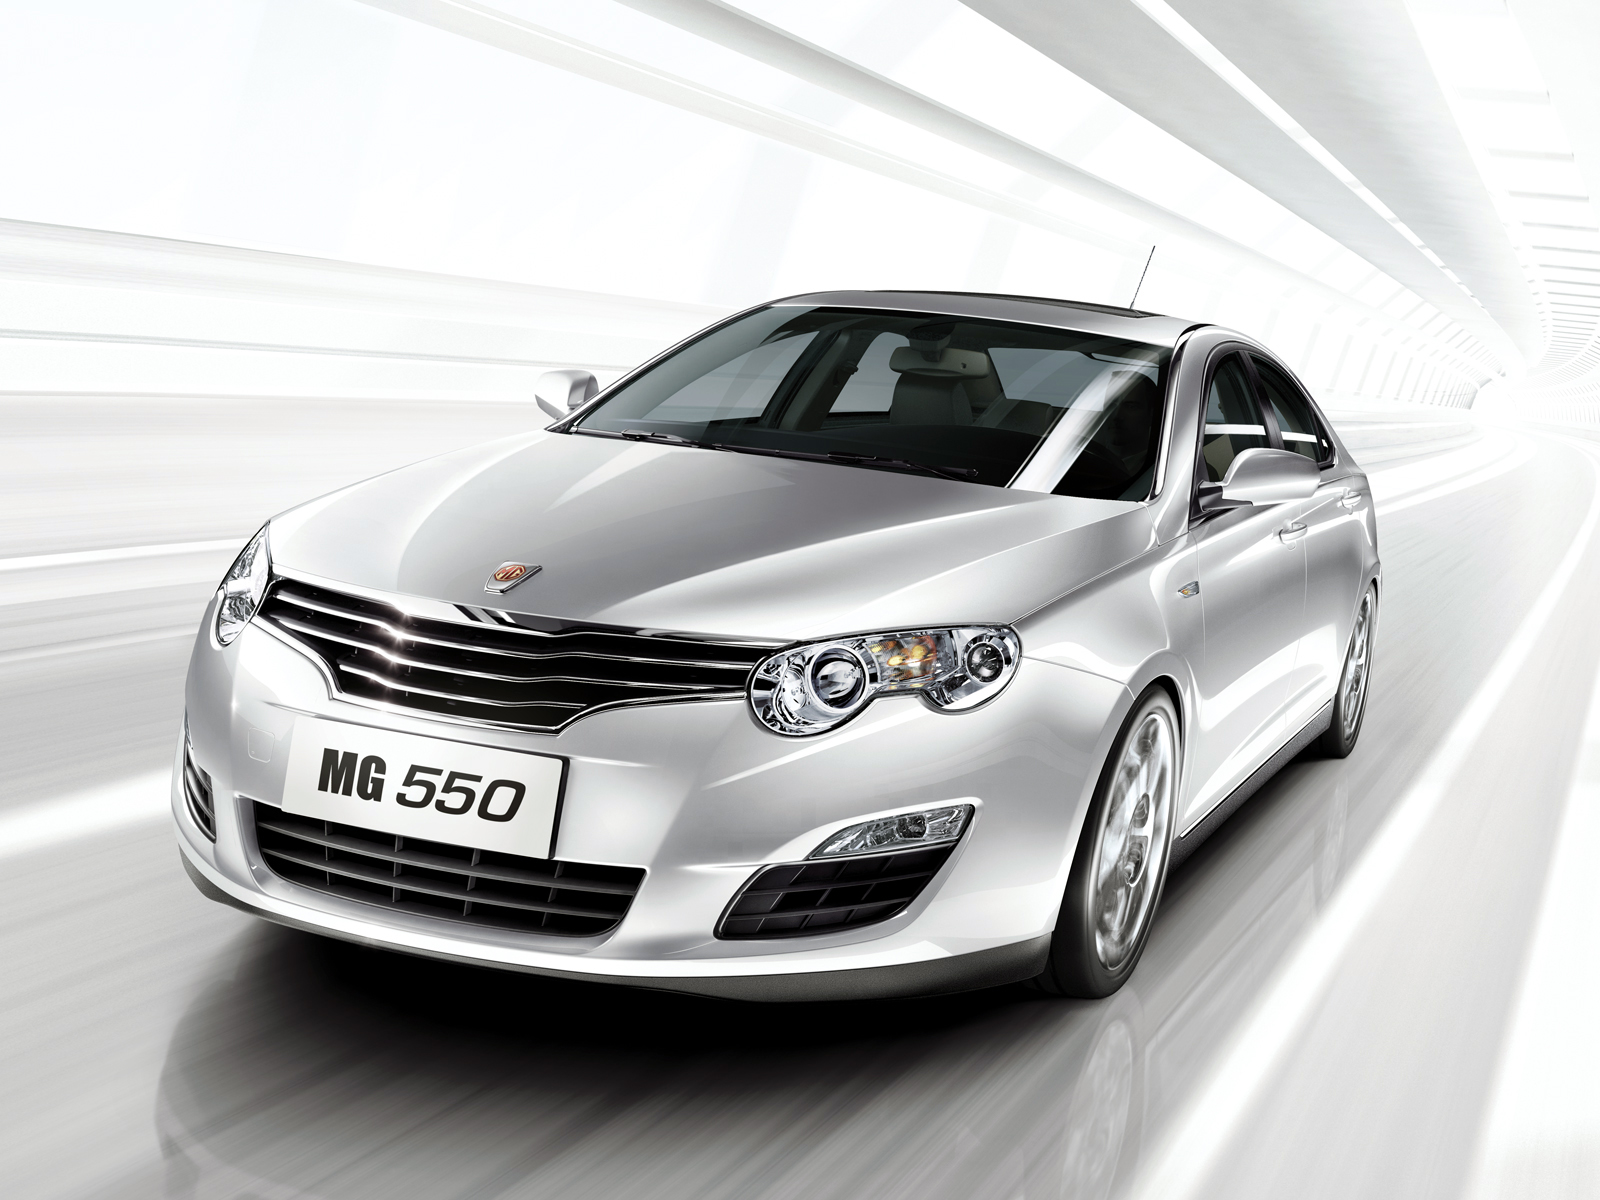 Mg 550 – pictures, information and specs - Auto-Database.com